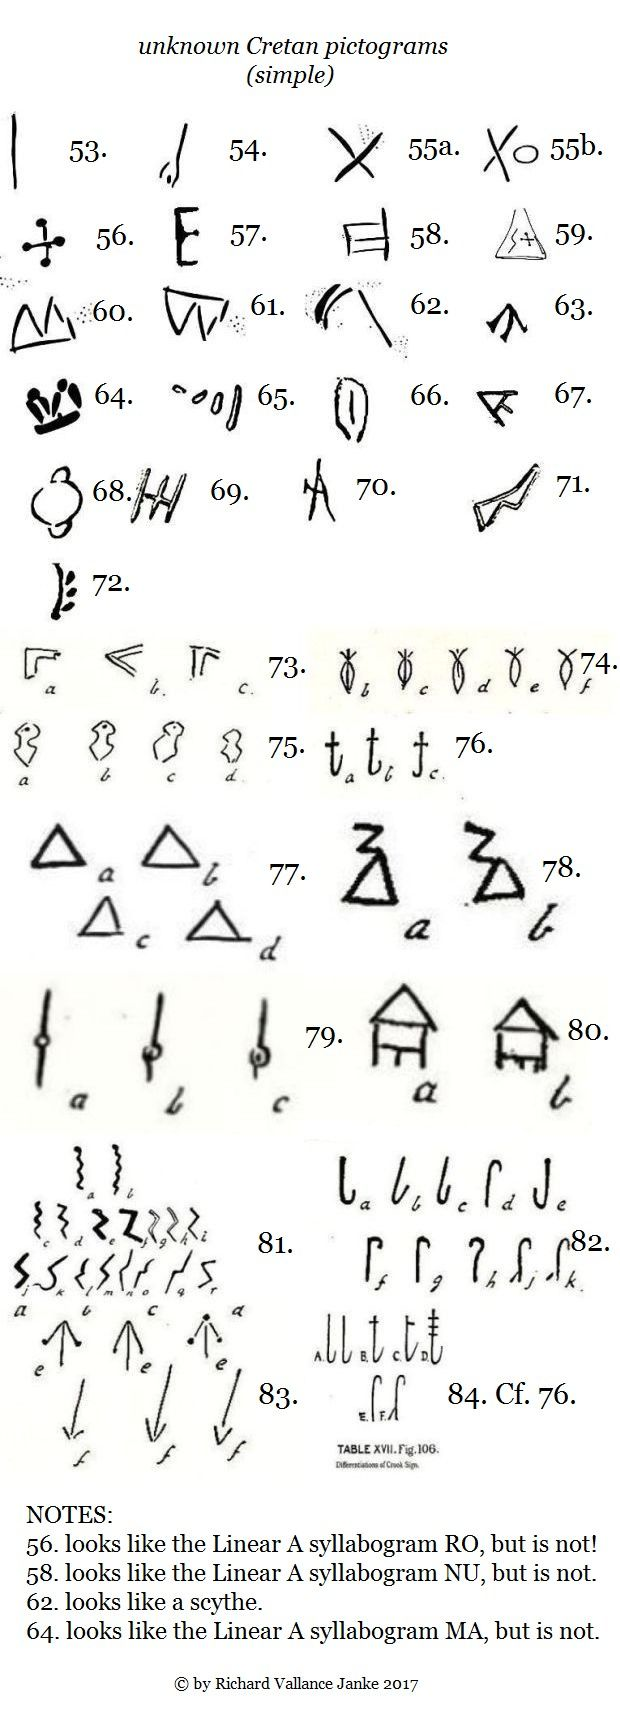 basic unknown Cretan pictograms